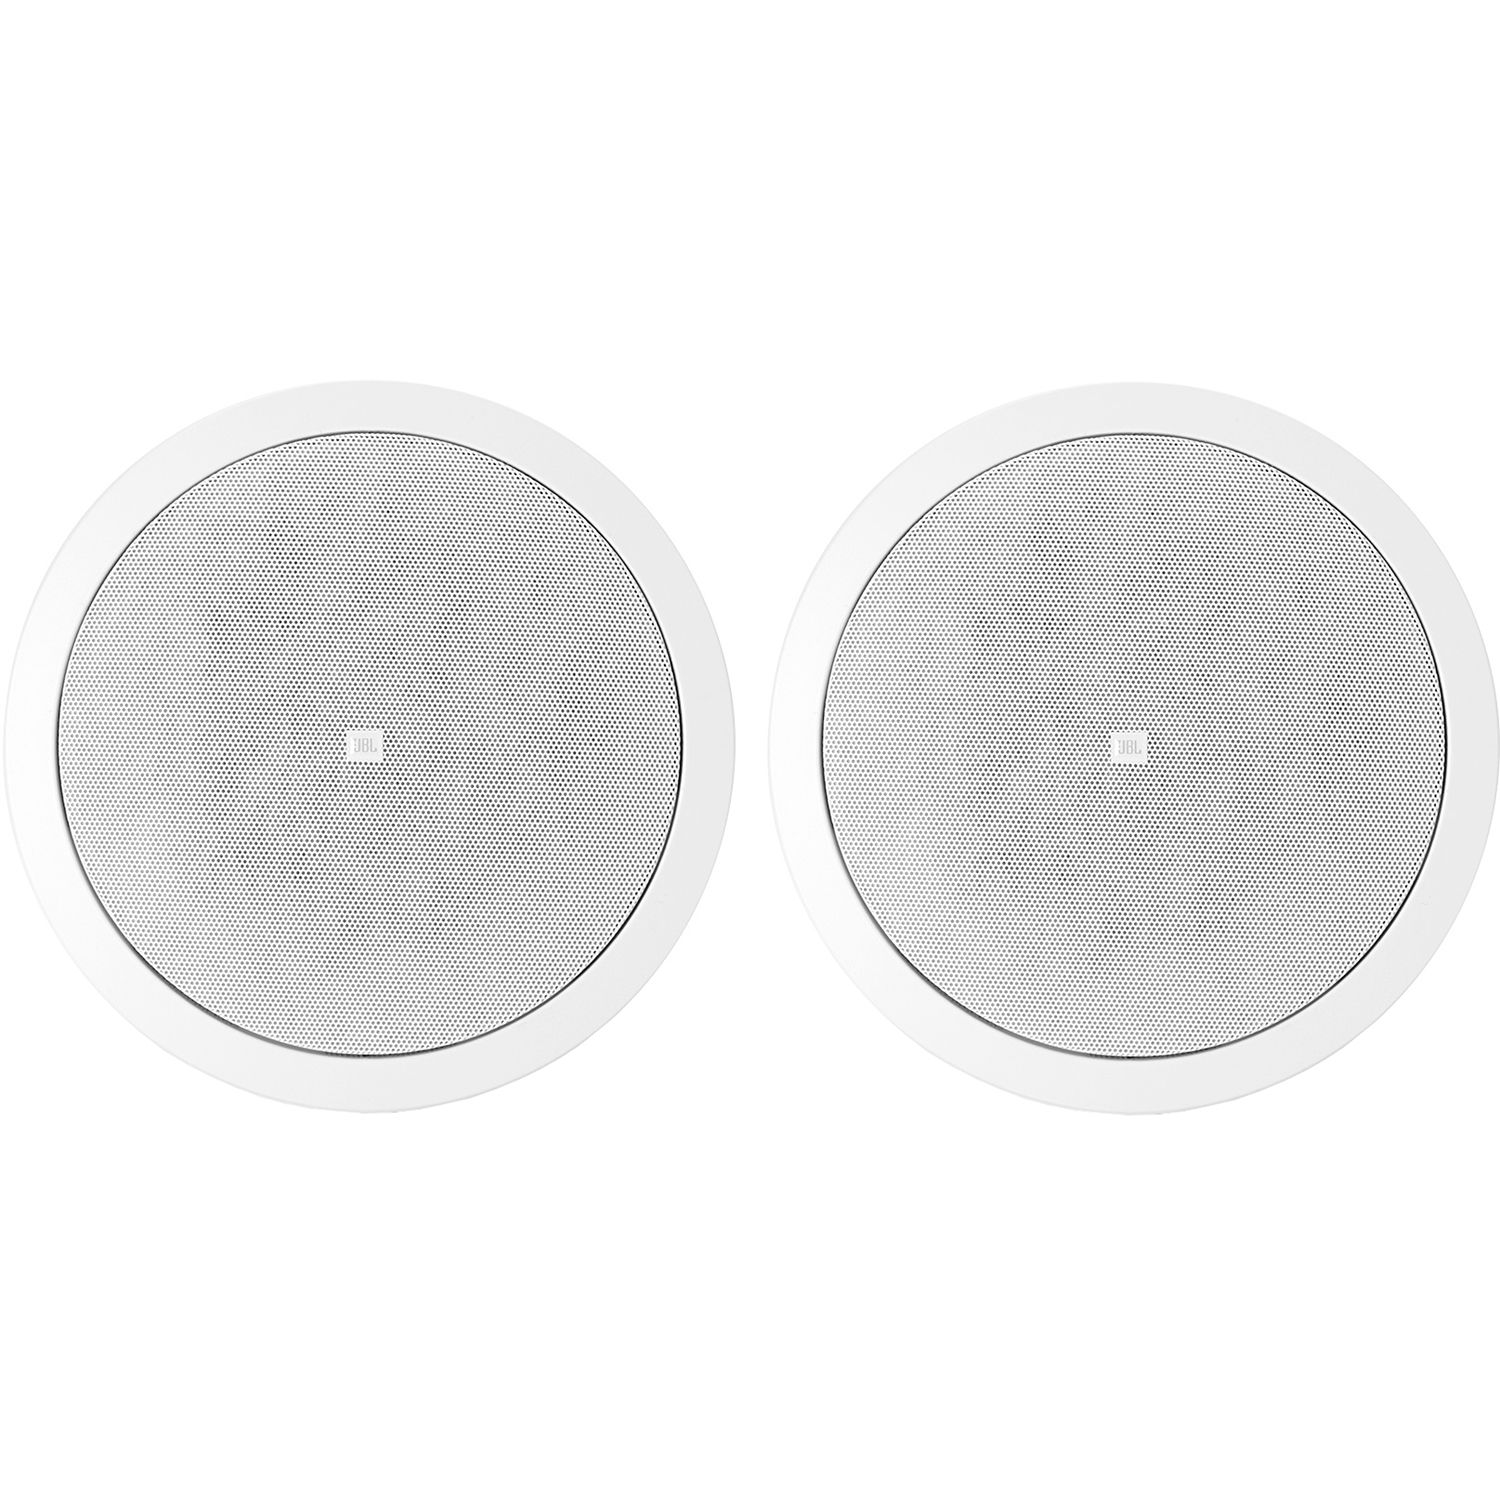 en ceiling commercial clipped original tiny square speakers hires products jbl us